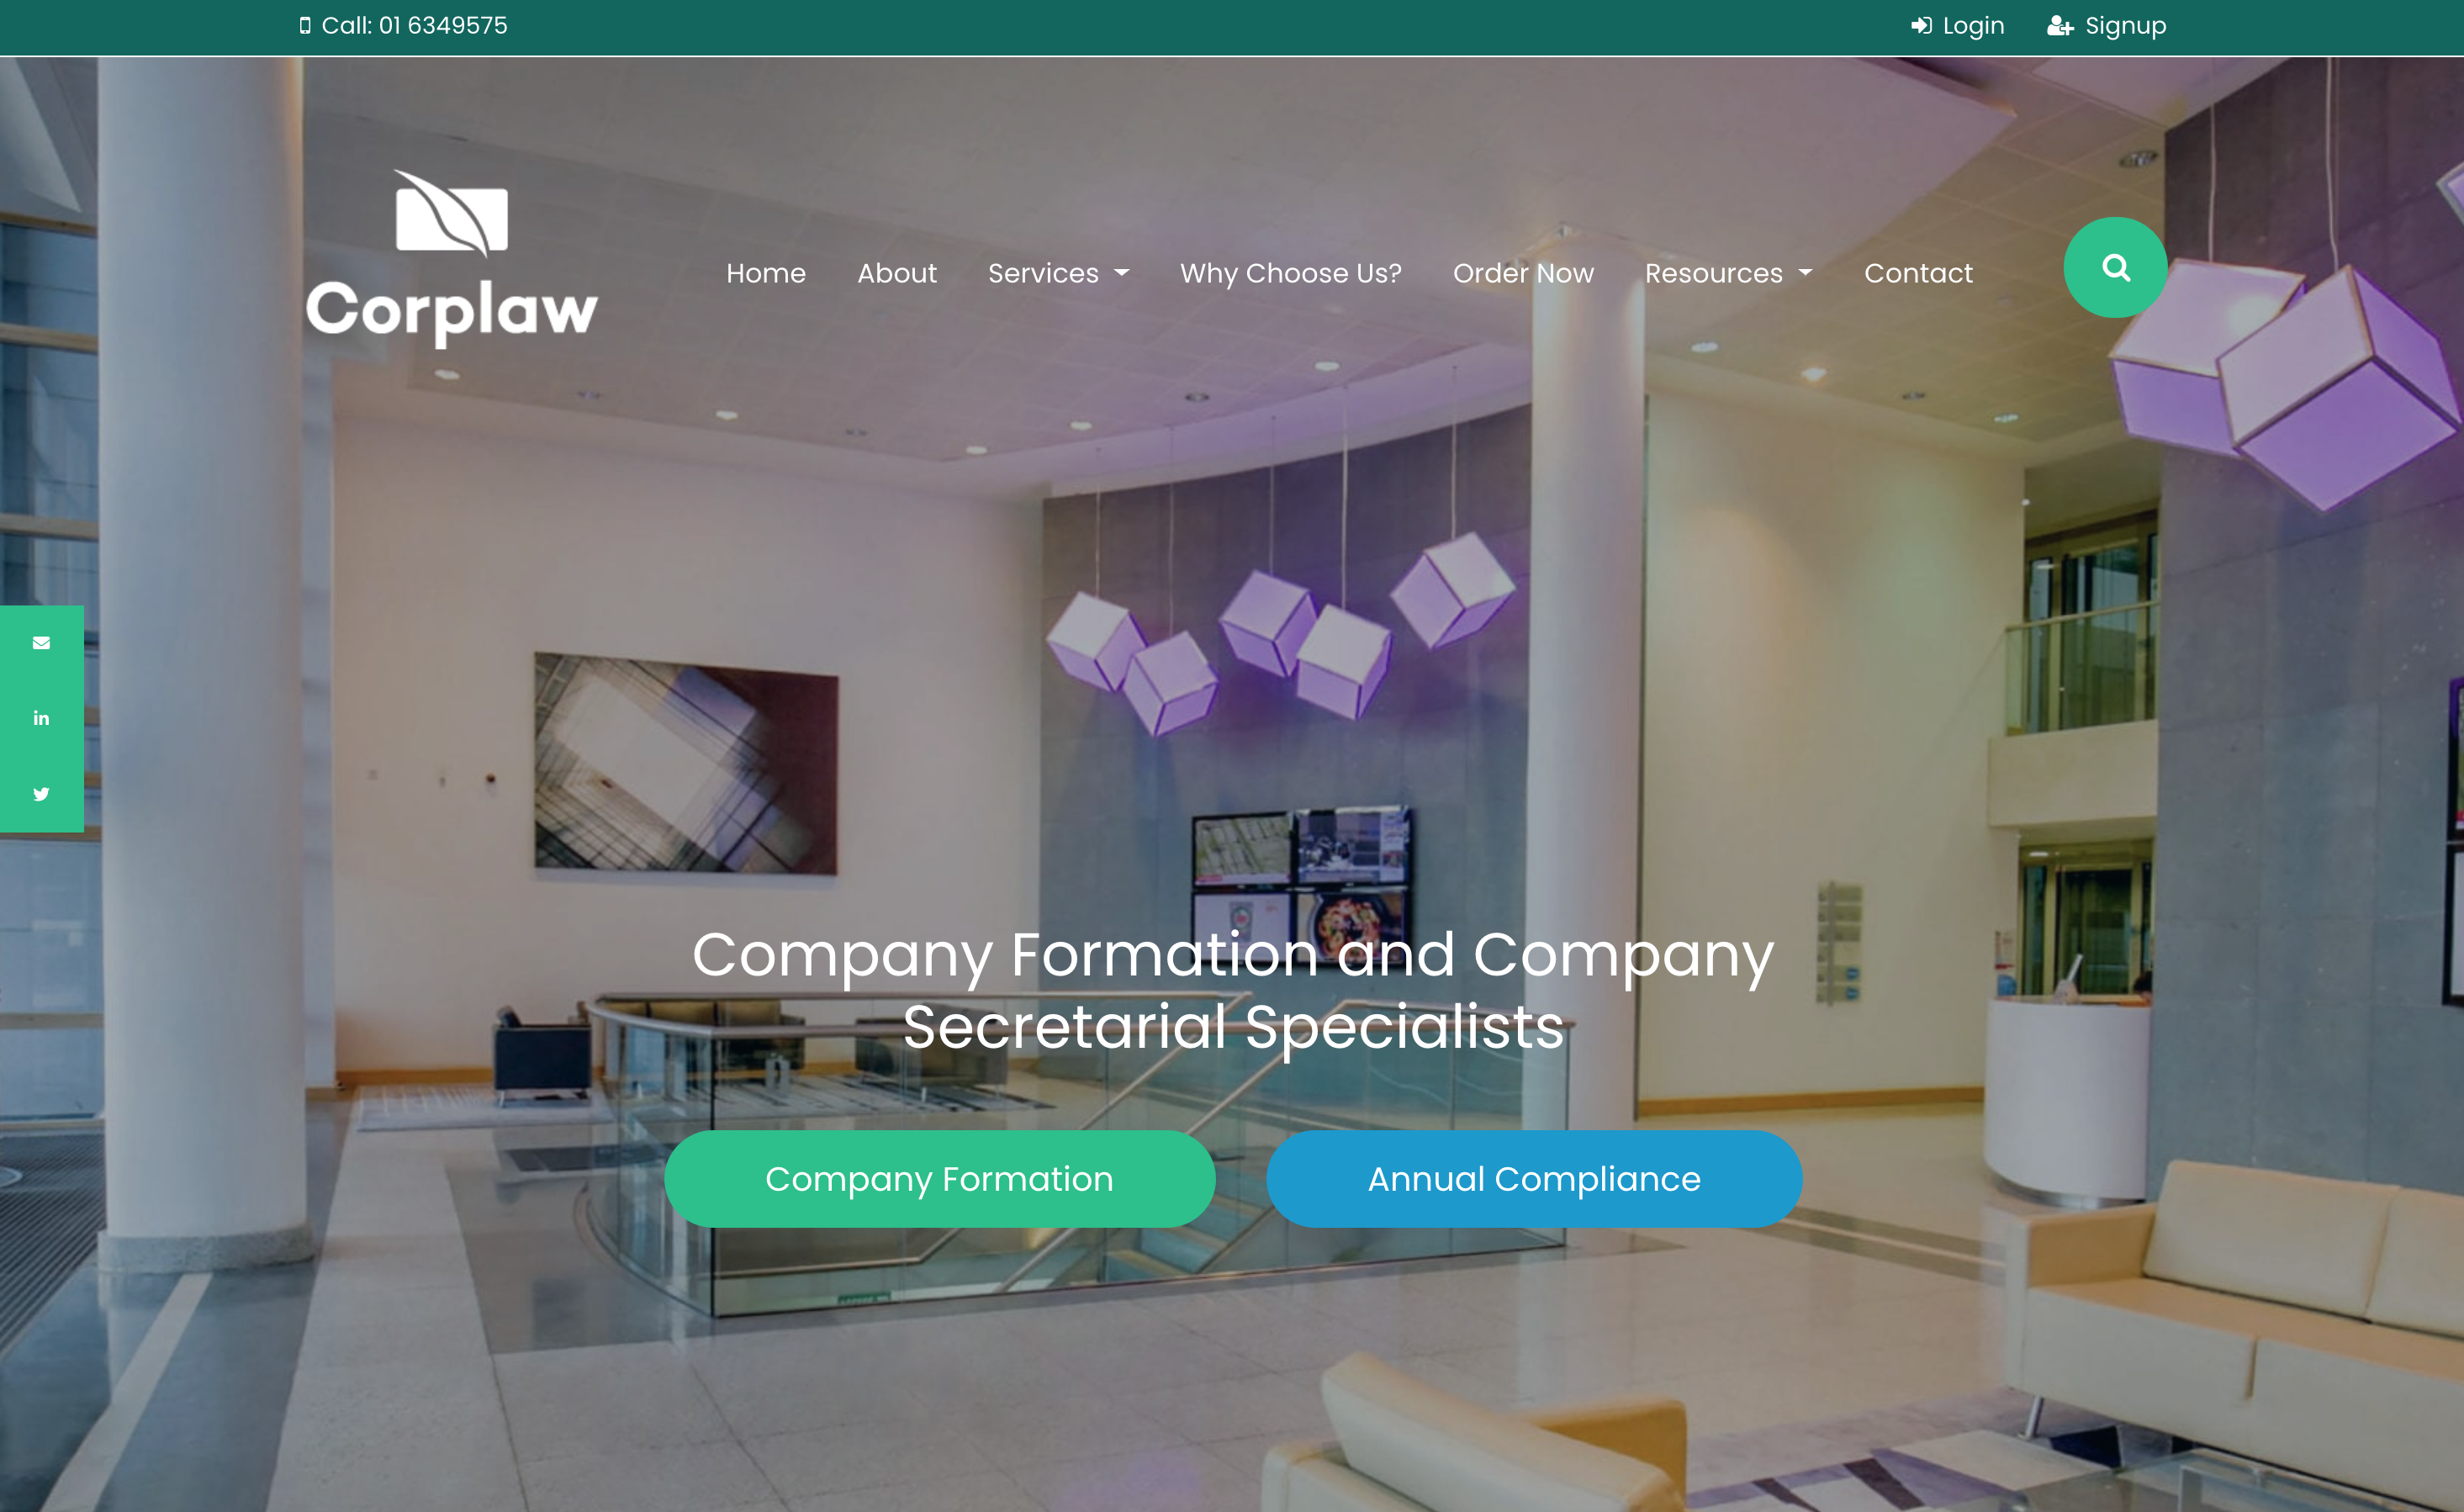 The New Corplaw Website with a Whole New Look - Homepage